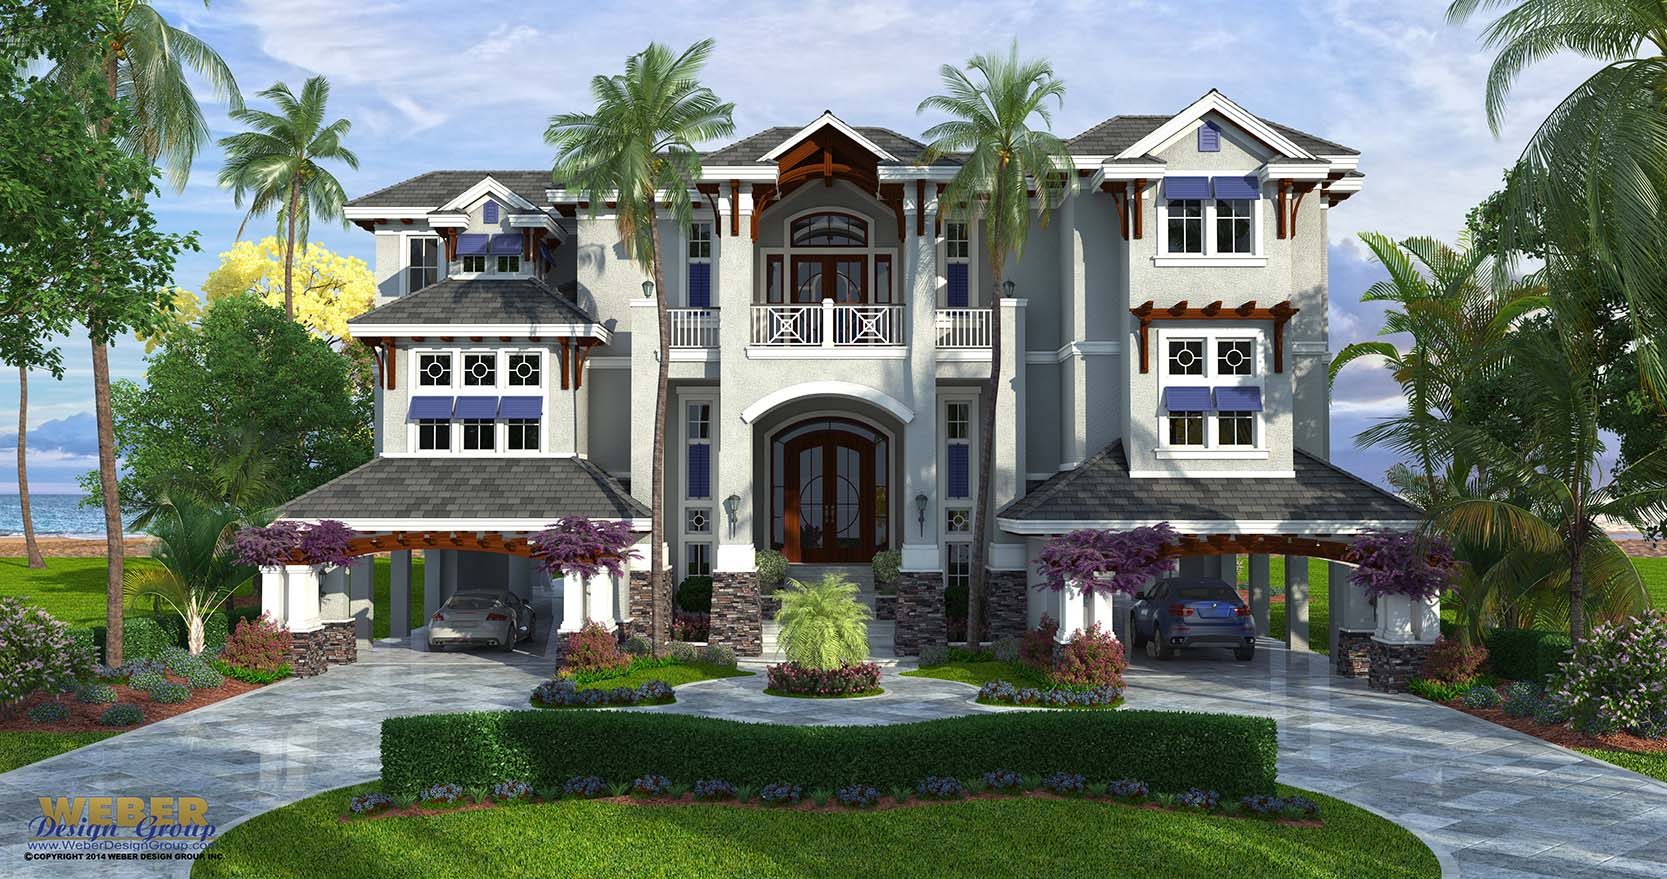 Grand Coastal Style House Story Outdoor Living 3 Story House Cost 3 Story Houseboat houzz-02 3 Story House